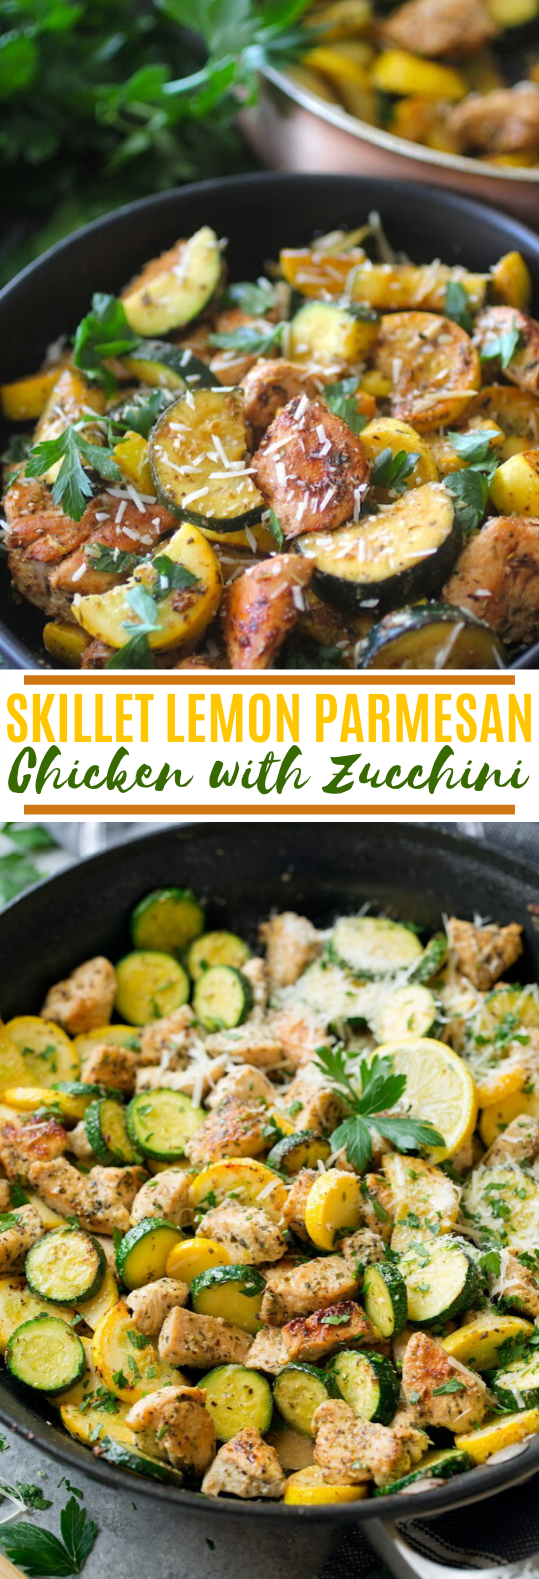 Skillet Lemon Parmesan Chicken with Zucchini #healthy #lowcarb #keto #dinner #easy